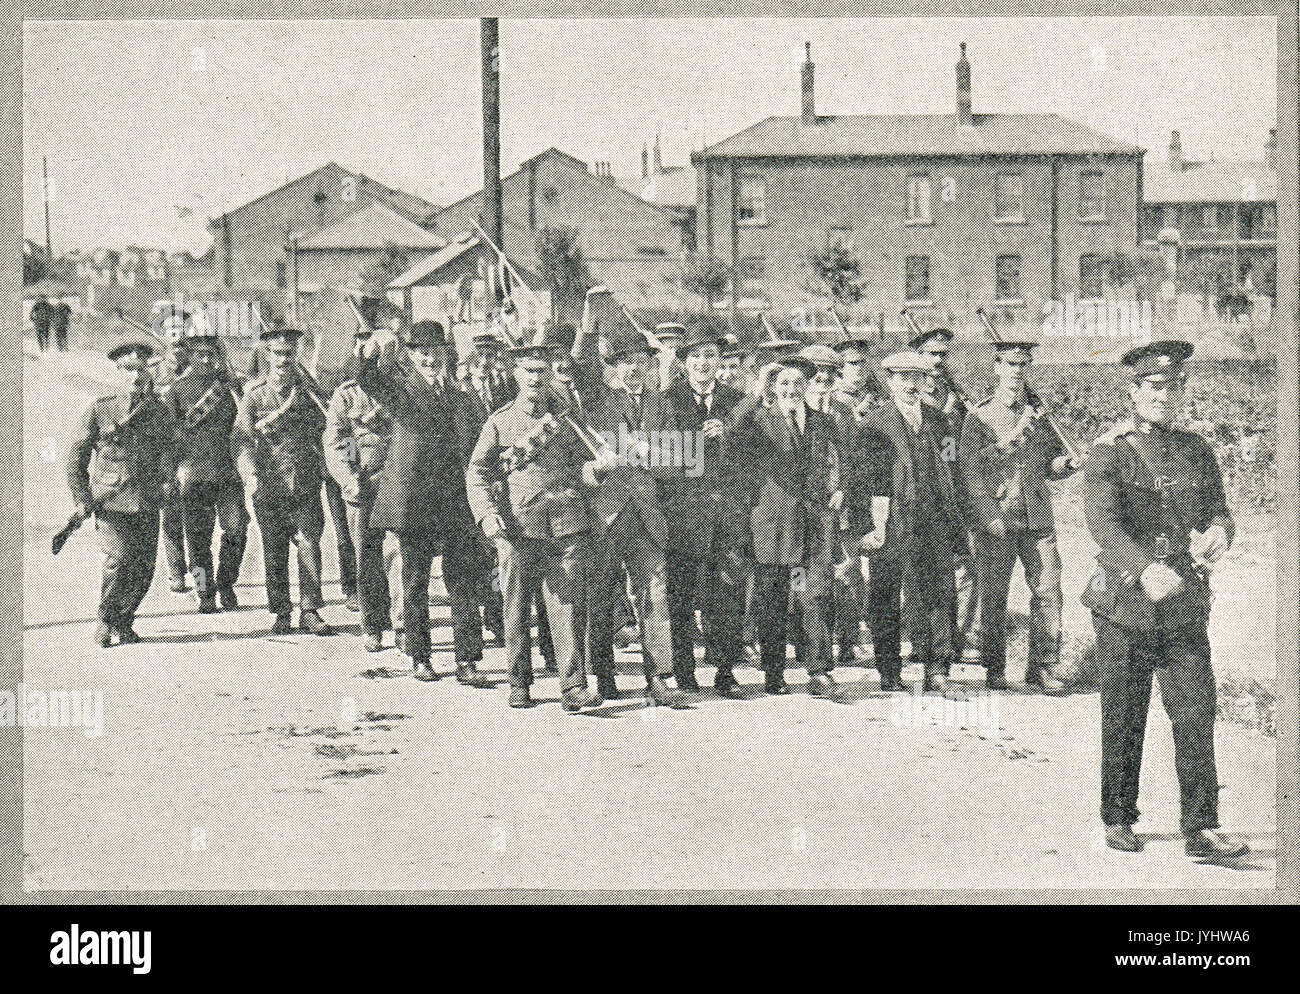 Enemy Aliens being rounded up in Scarborough, WW1 - Stock Image